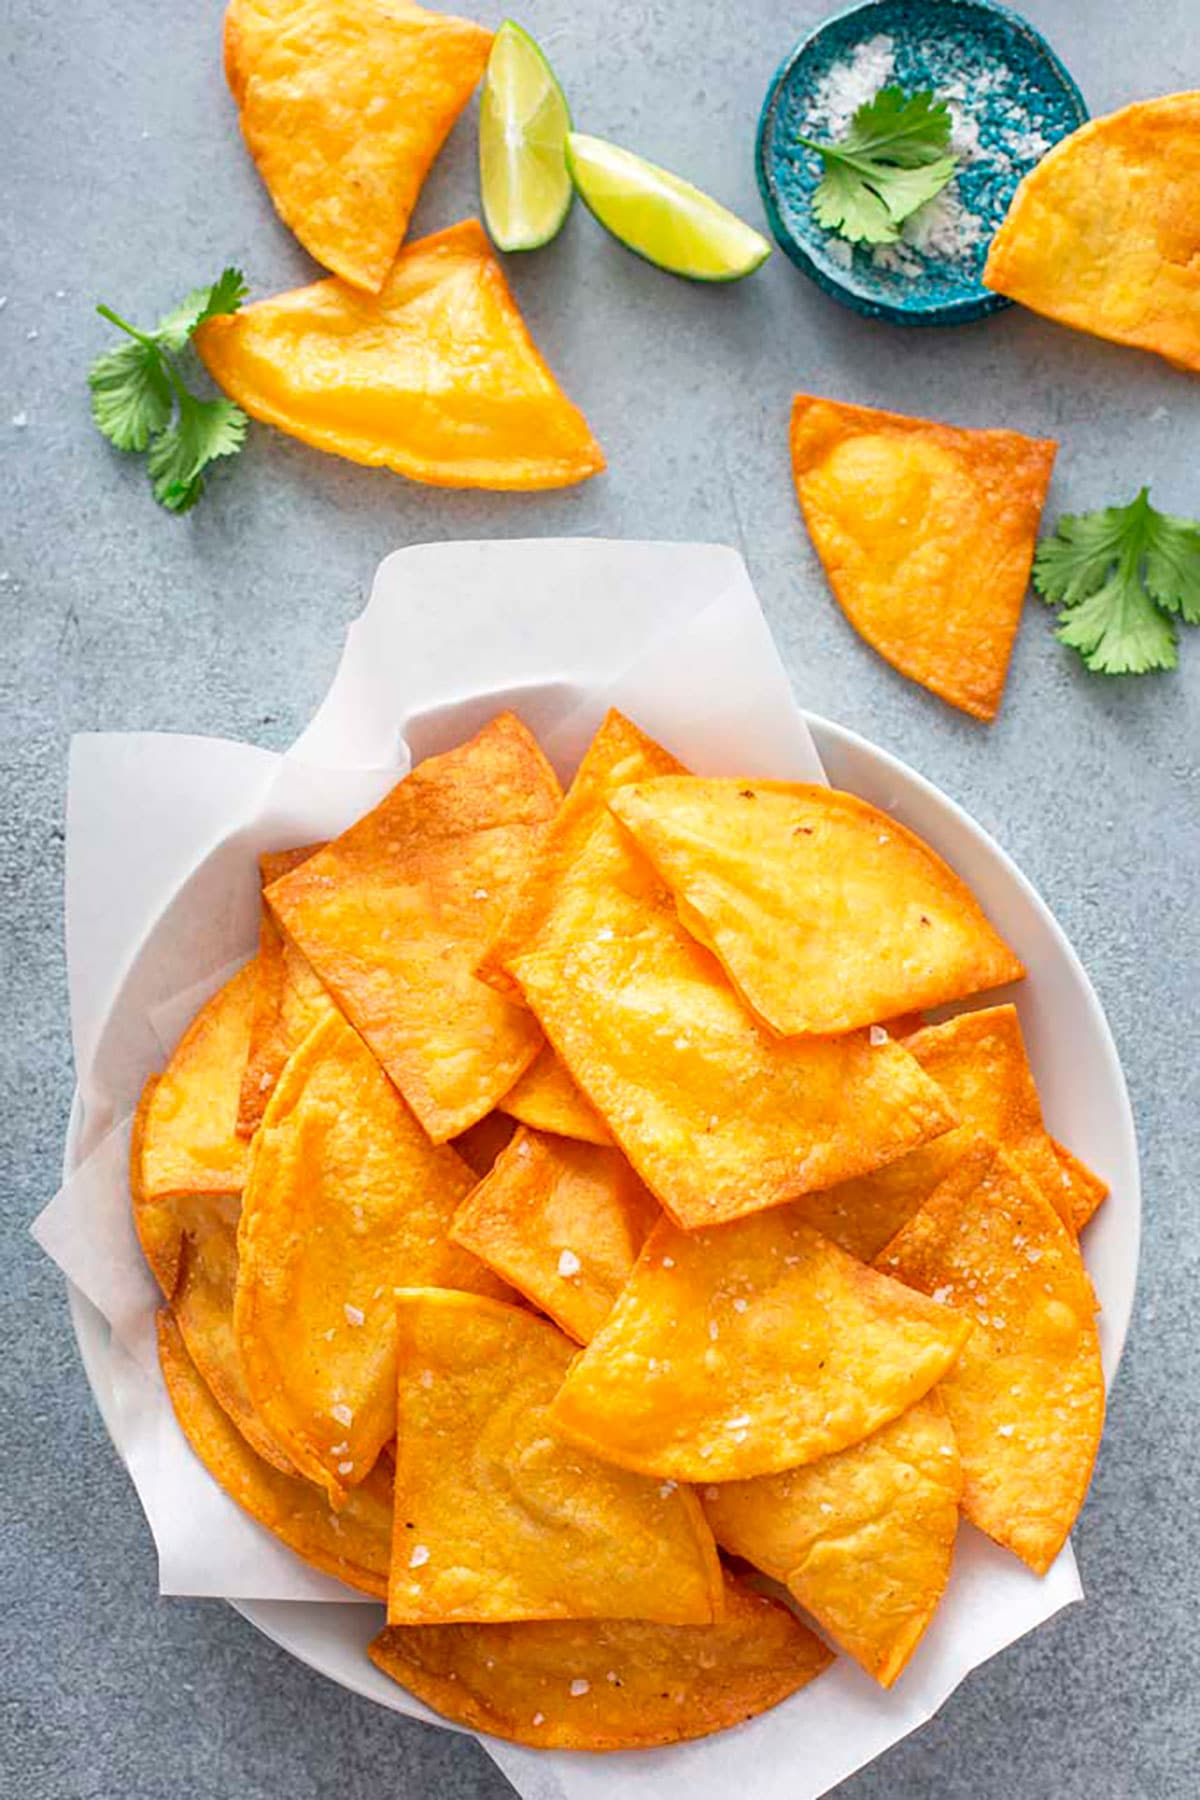 Bowl of tortilla chips sprinkled with flaky salt.